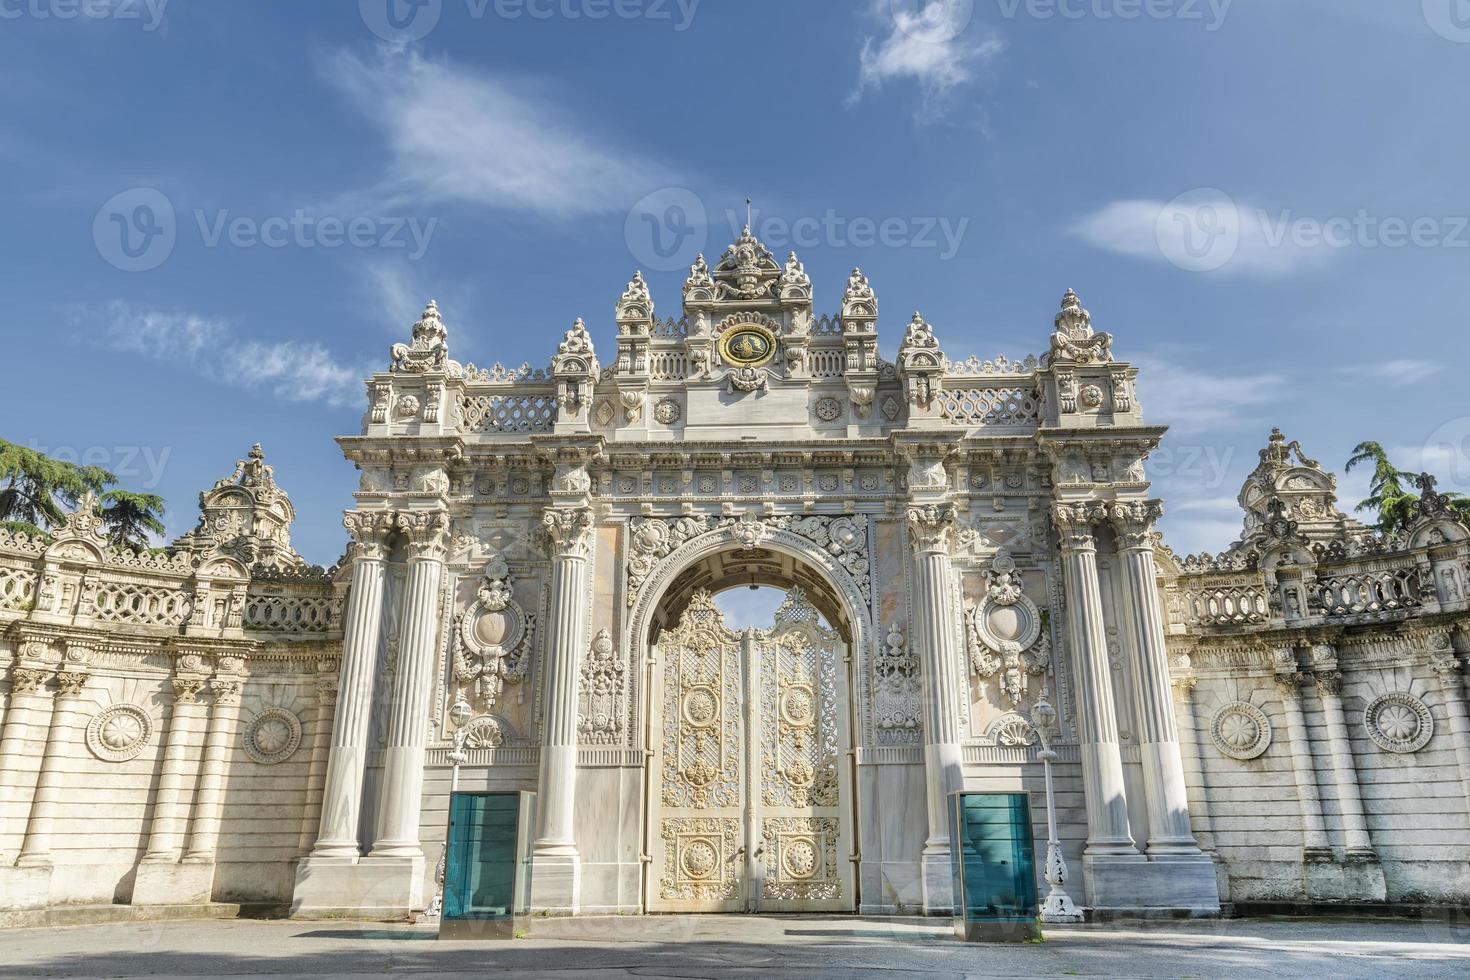 Gate of The Sultan, Dolmabahce Palace, Istanbul, Turkey photo